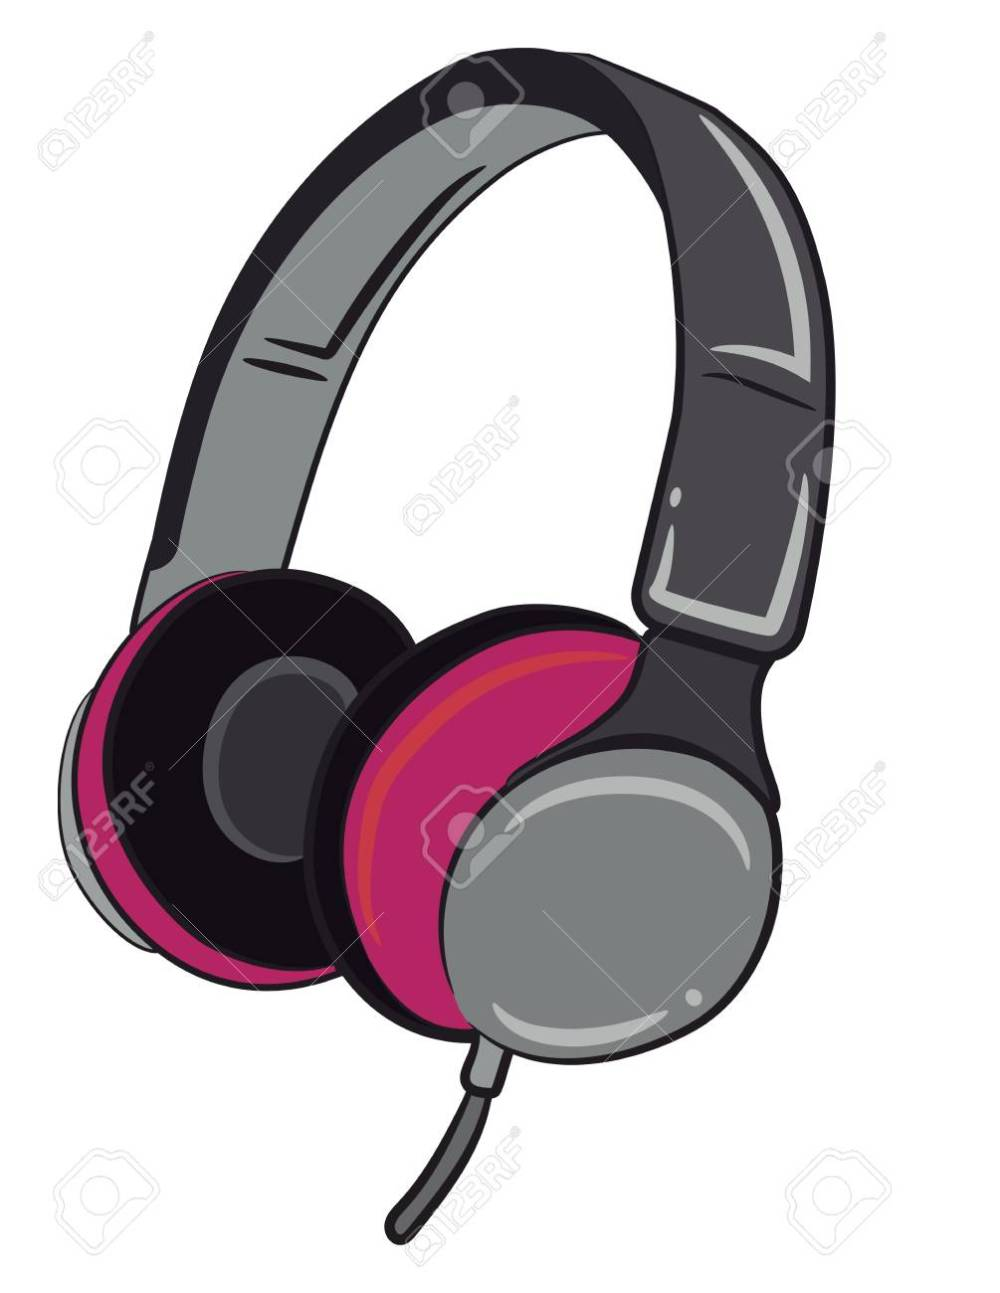 medium resolution of a wired headphone in grey and pink color vector color drawing or illustration stock vector